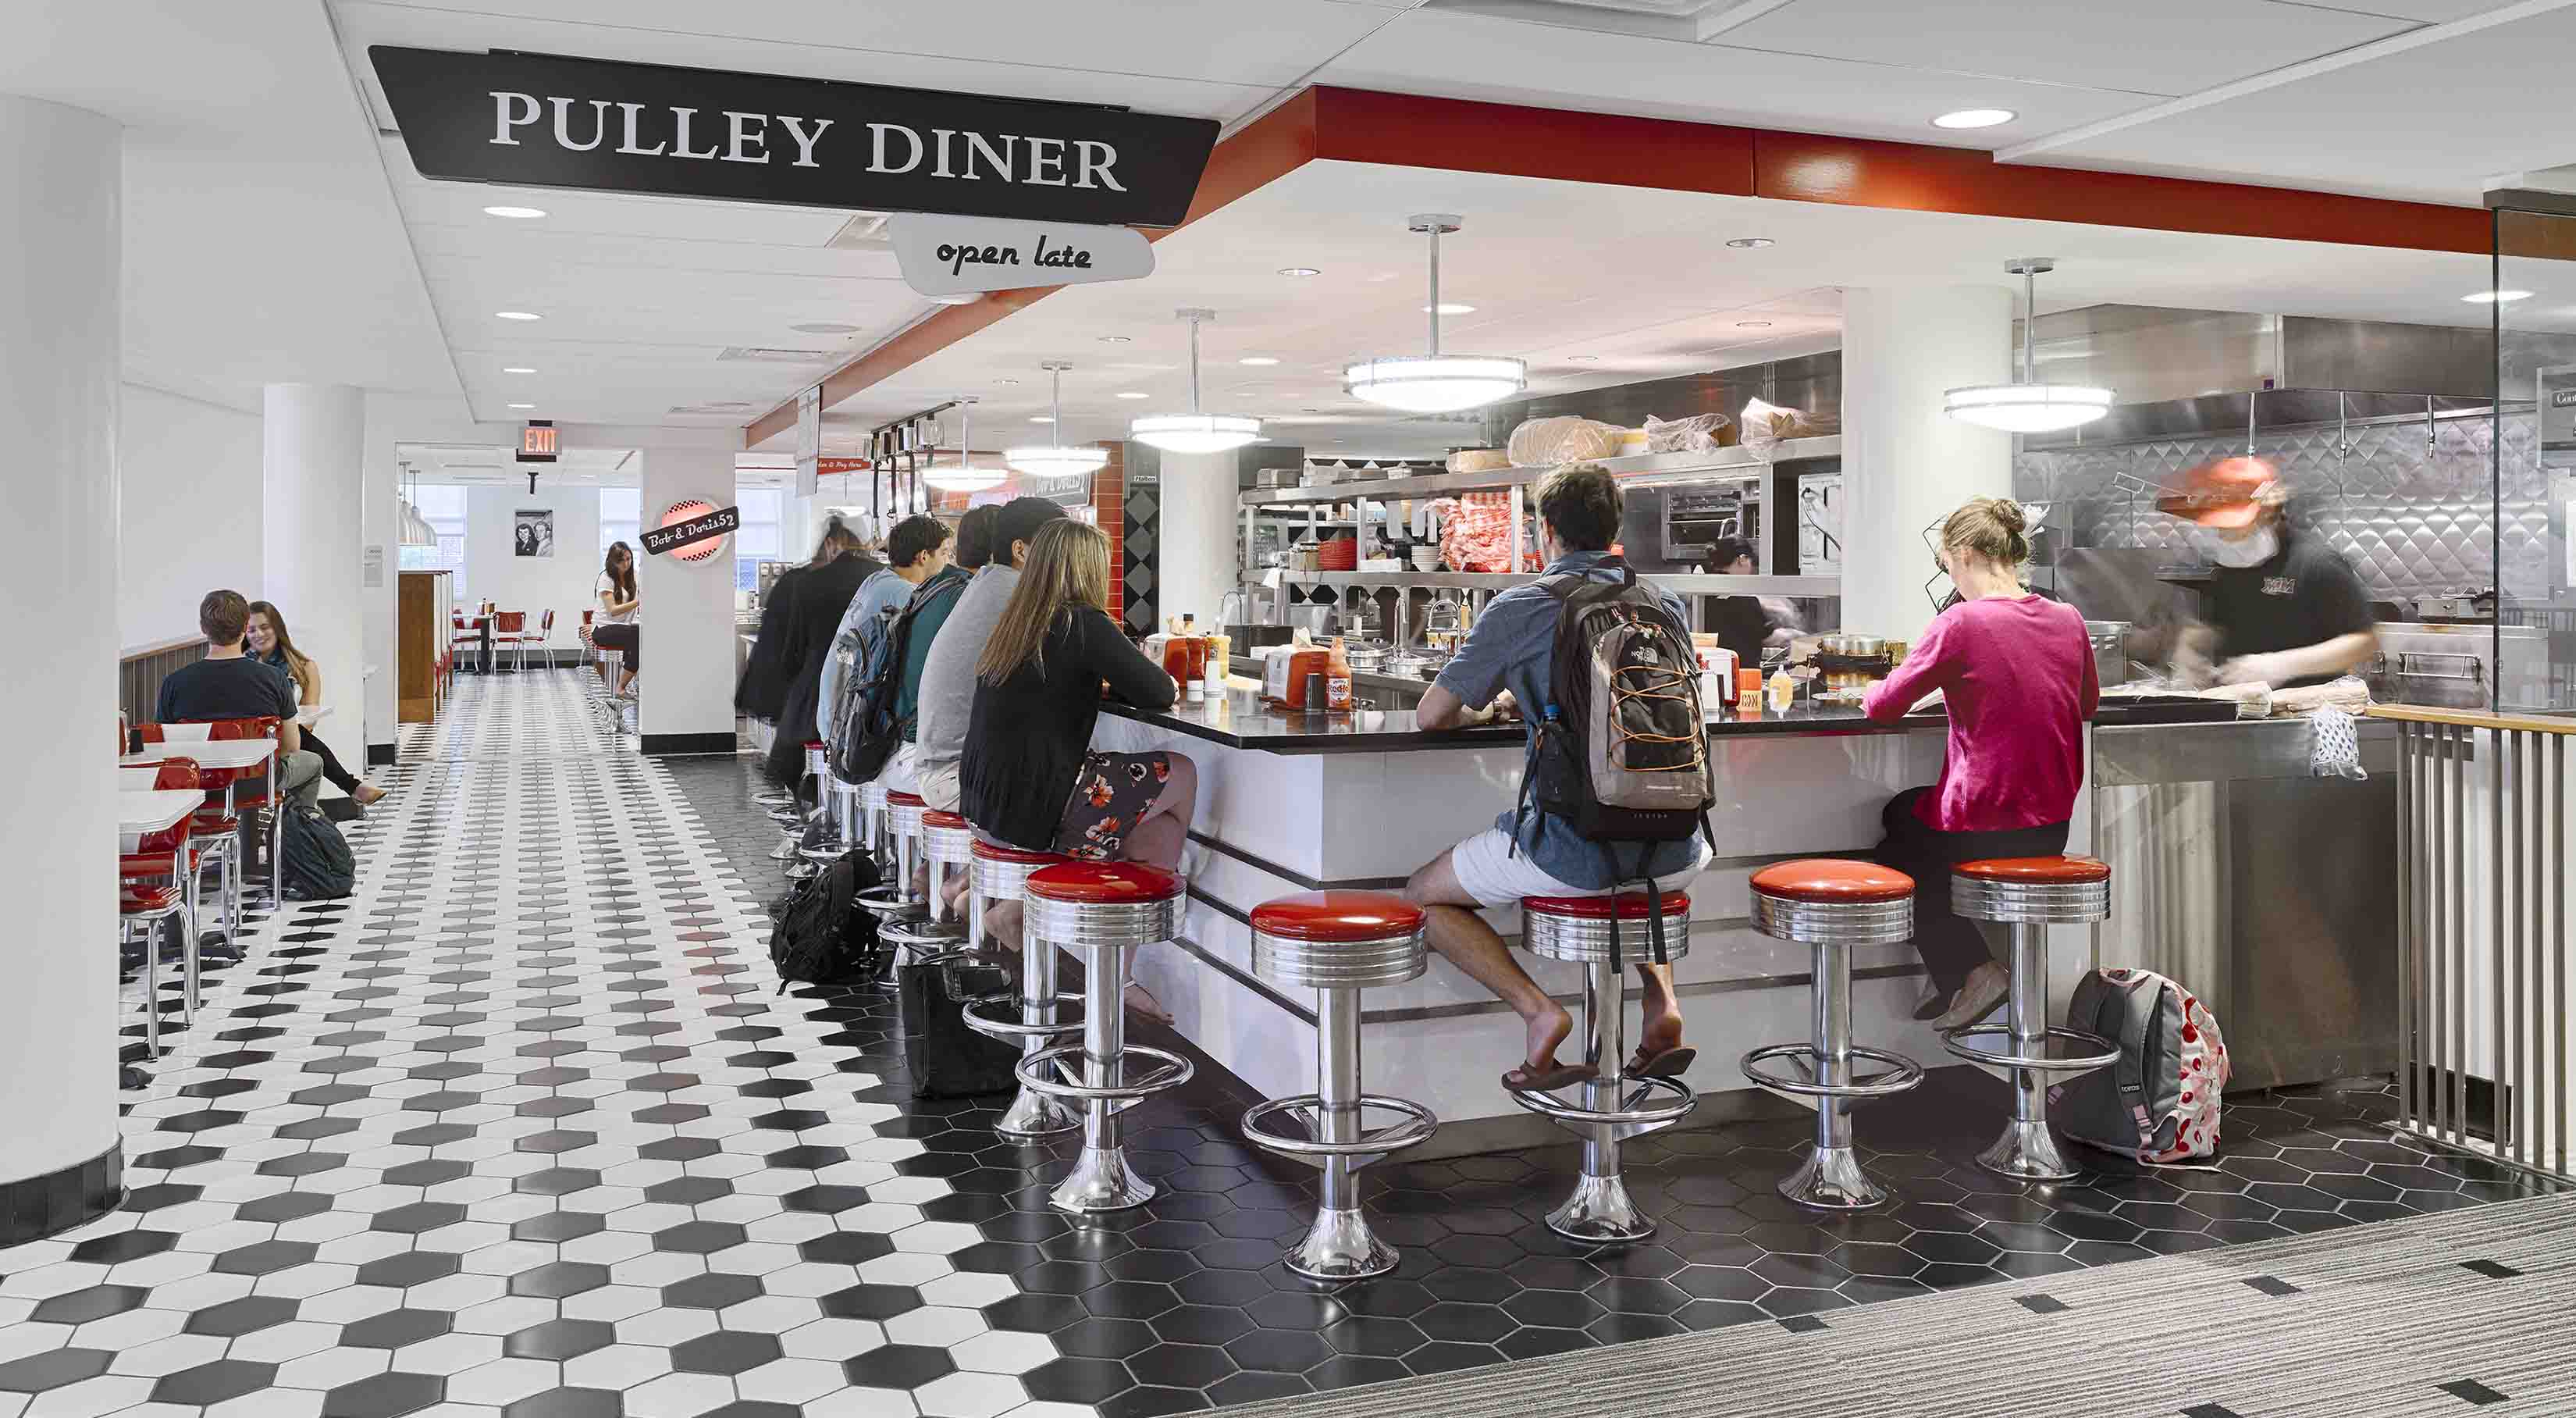 Students seated a Pulley Diner at the Armstrong Student Center